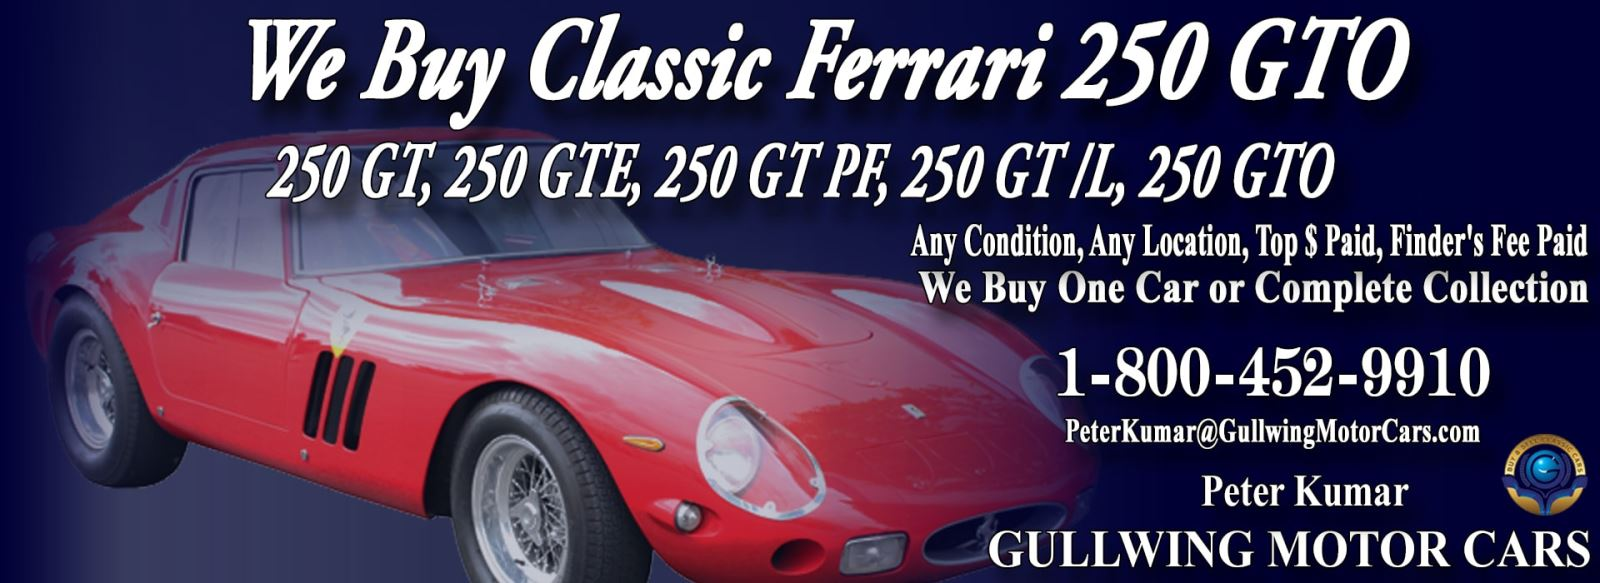 Classic Ferrari 250 GTO for sale, we buy vintage Ferrari 250GTO. Call Peter Kumar. Gullwing Motor